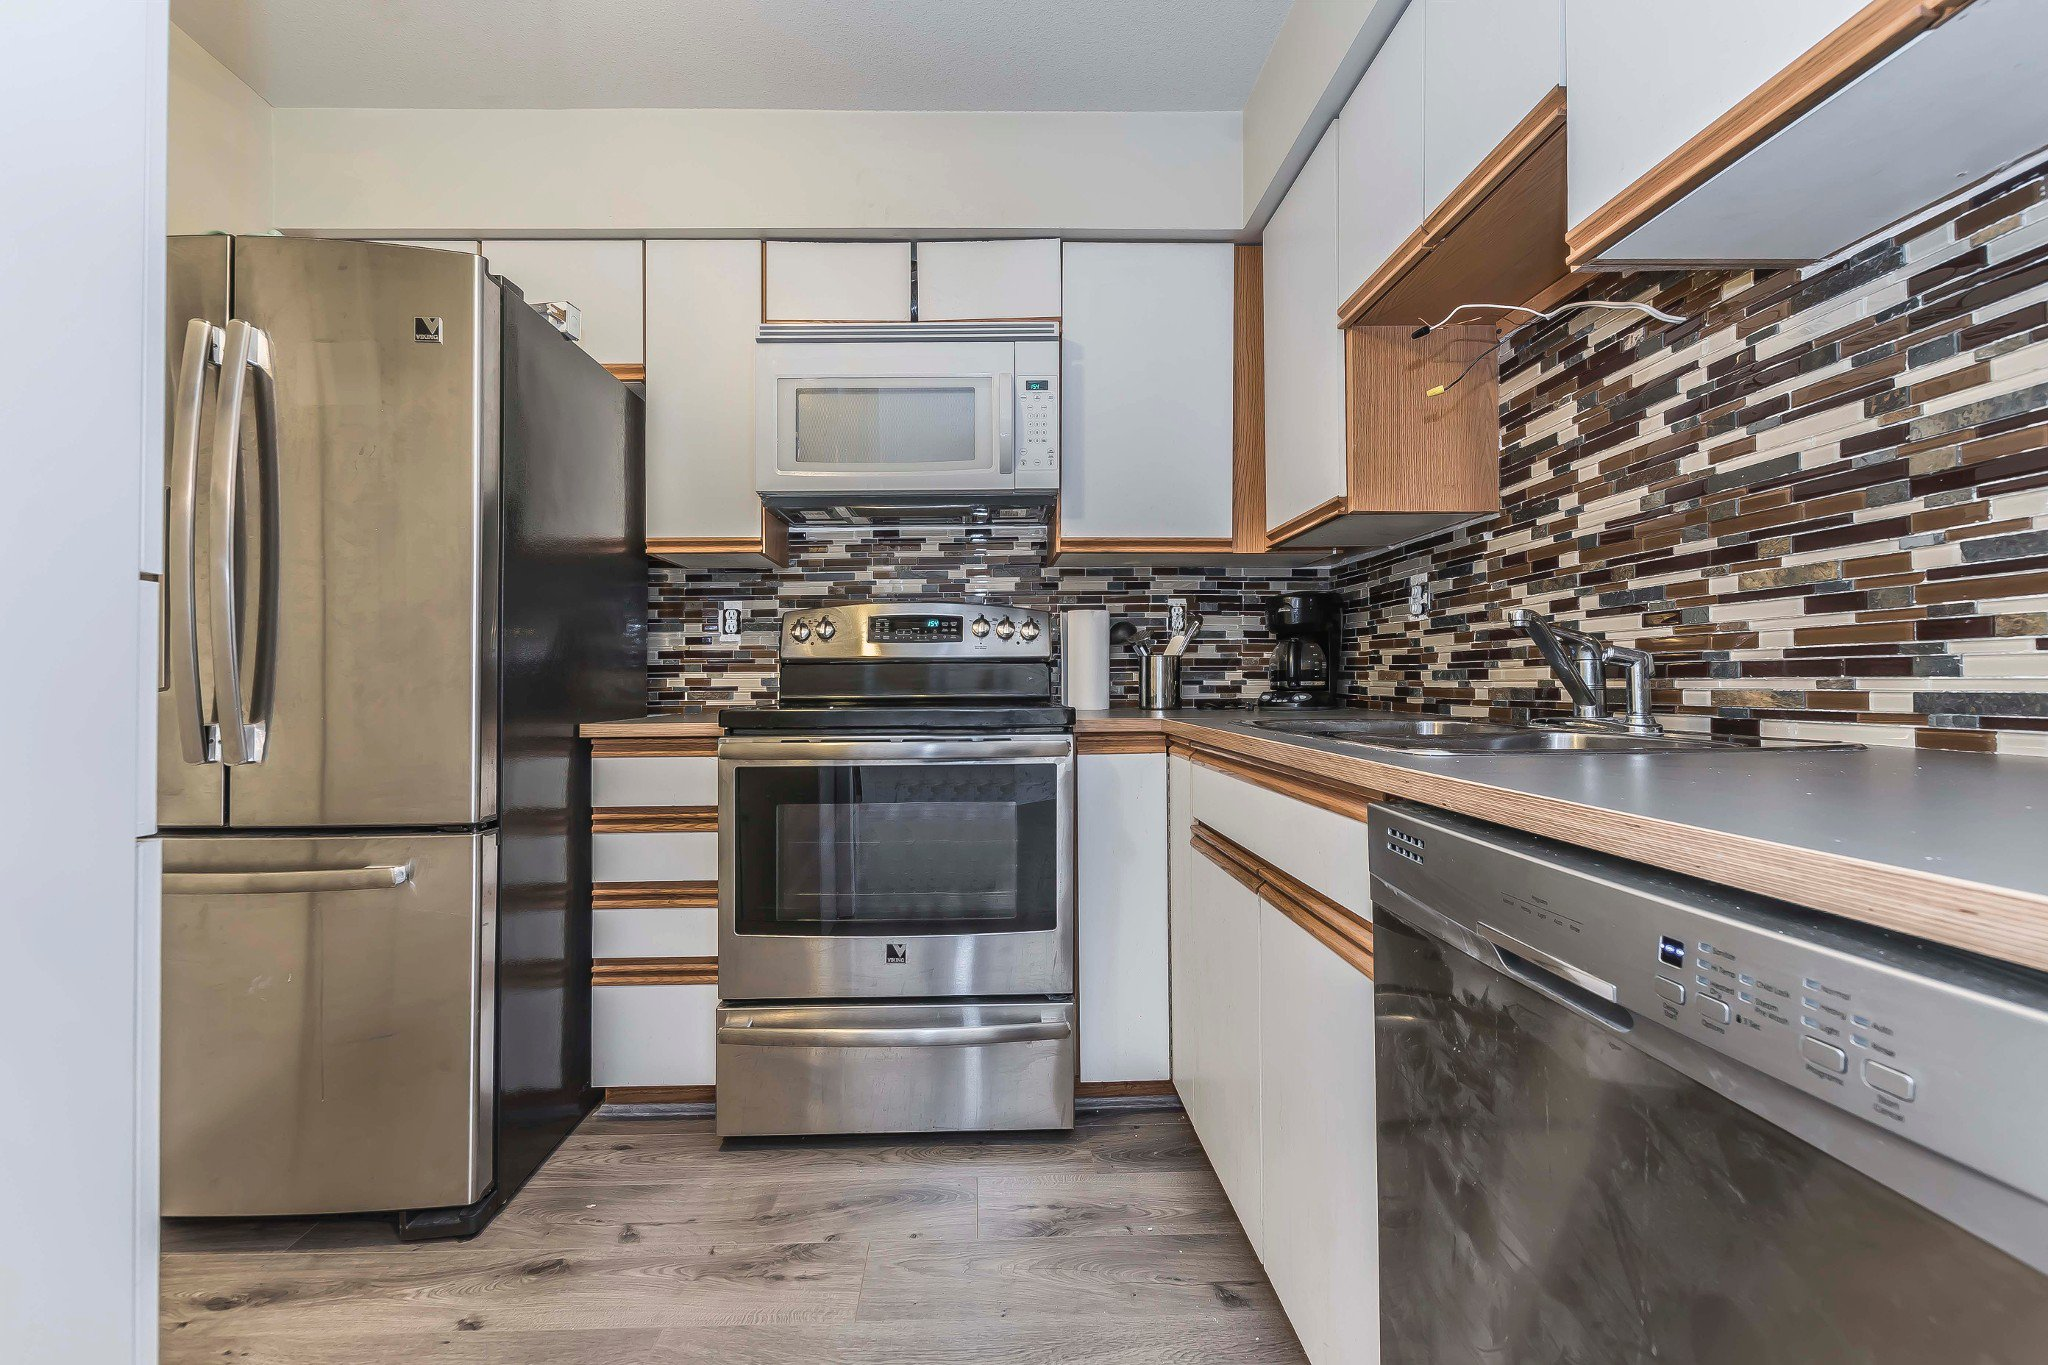 Photo 8: Photos: 305 9186 Edward Street in Chilliwack: Condo for sale : MLS®# R2218862